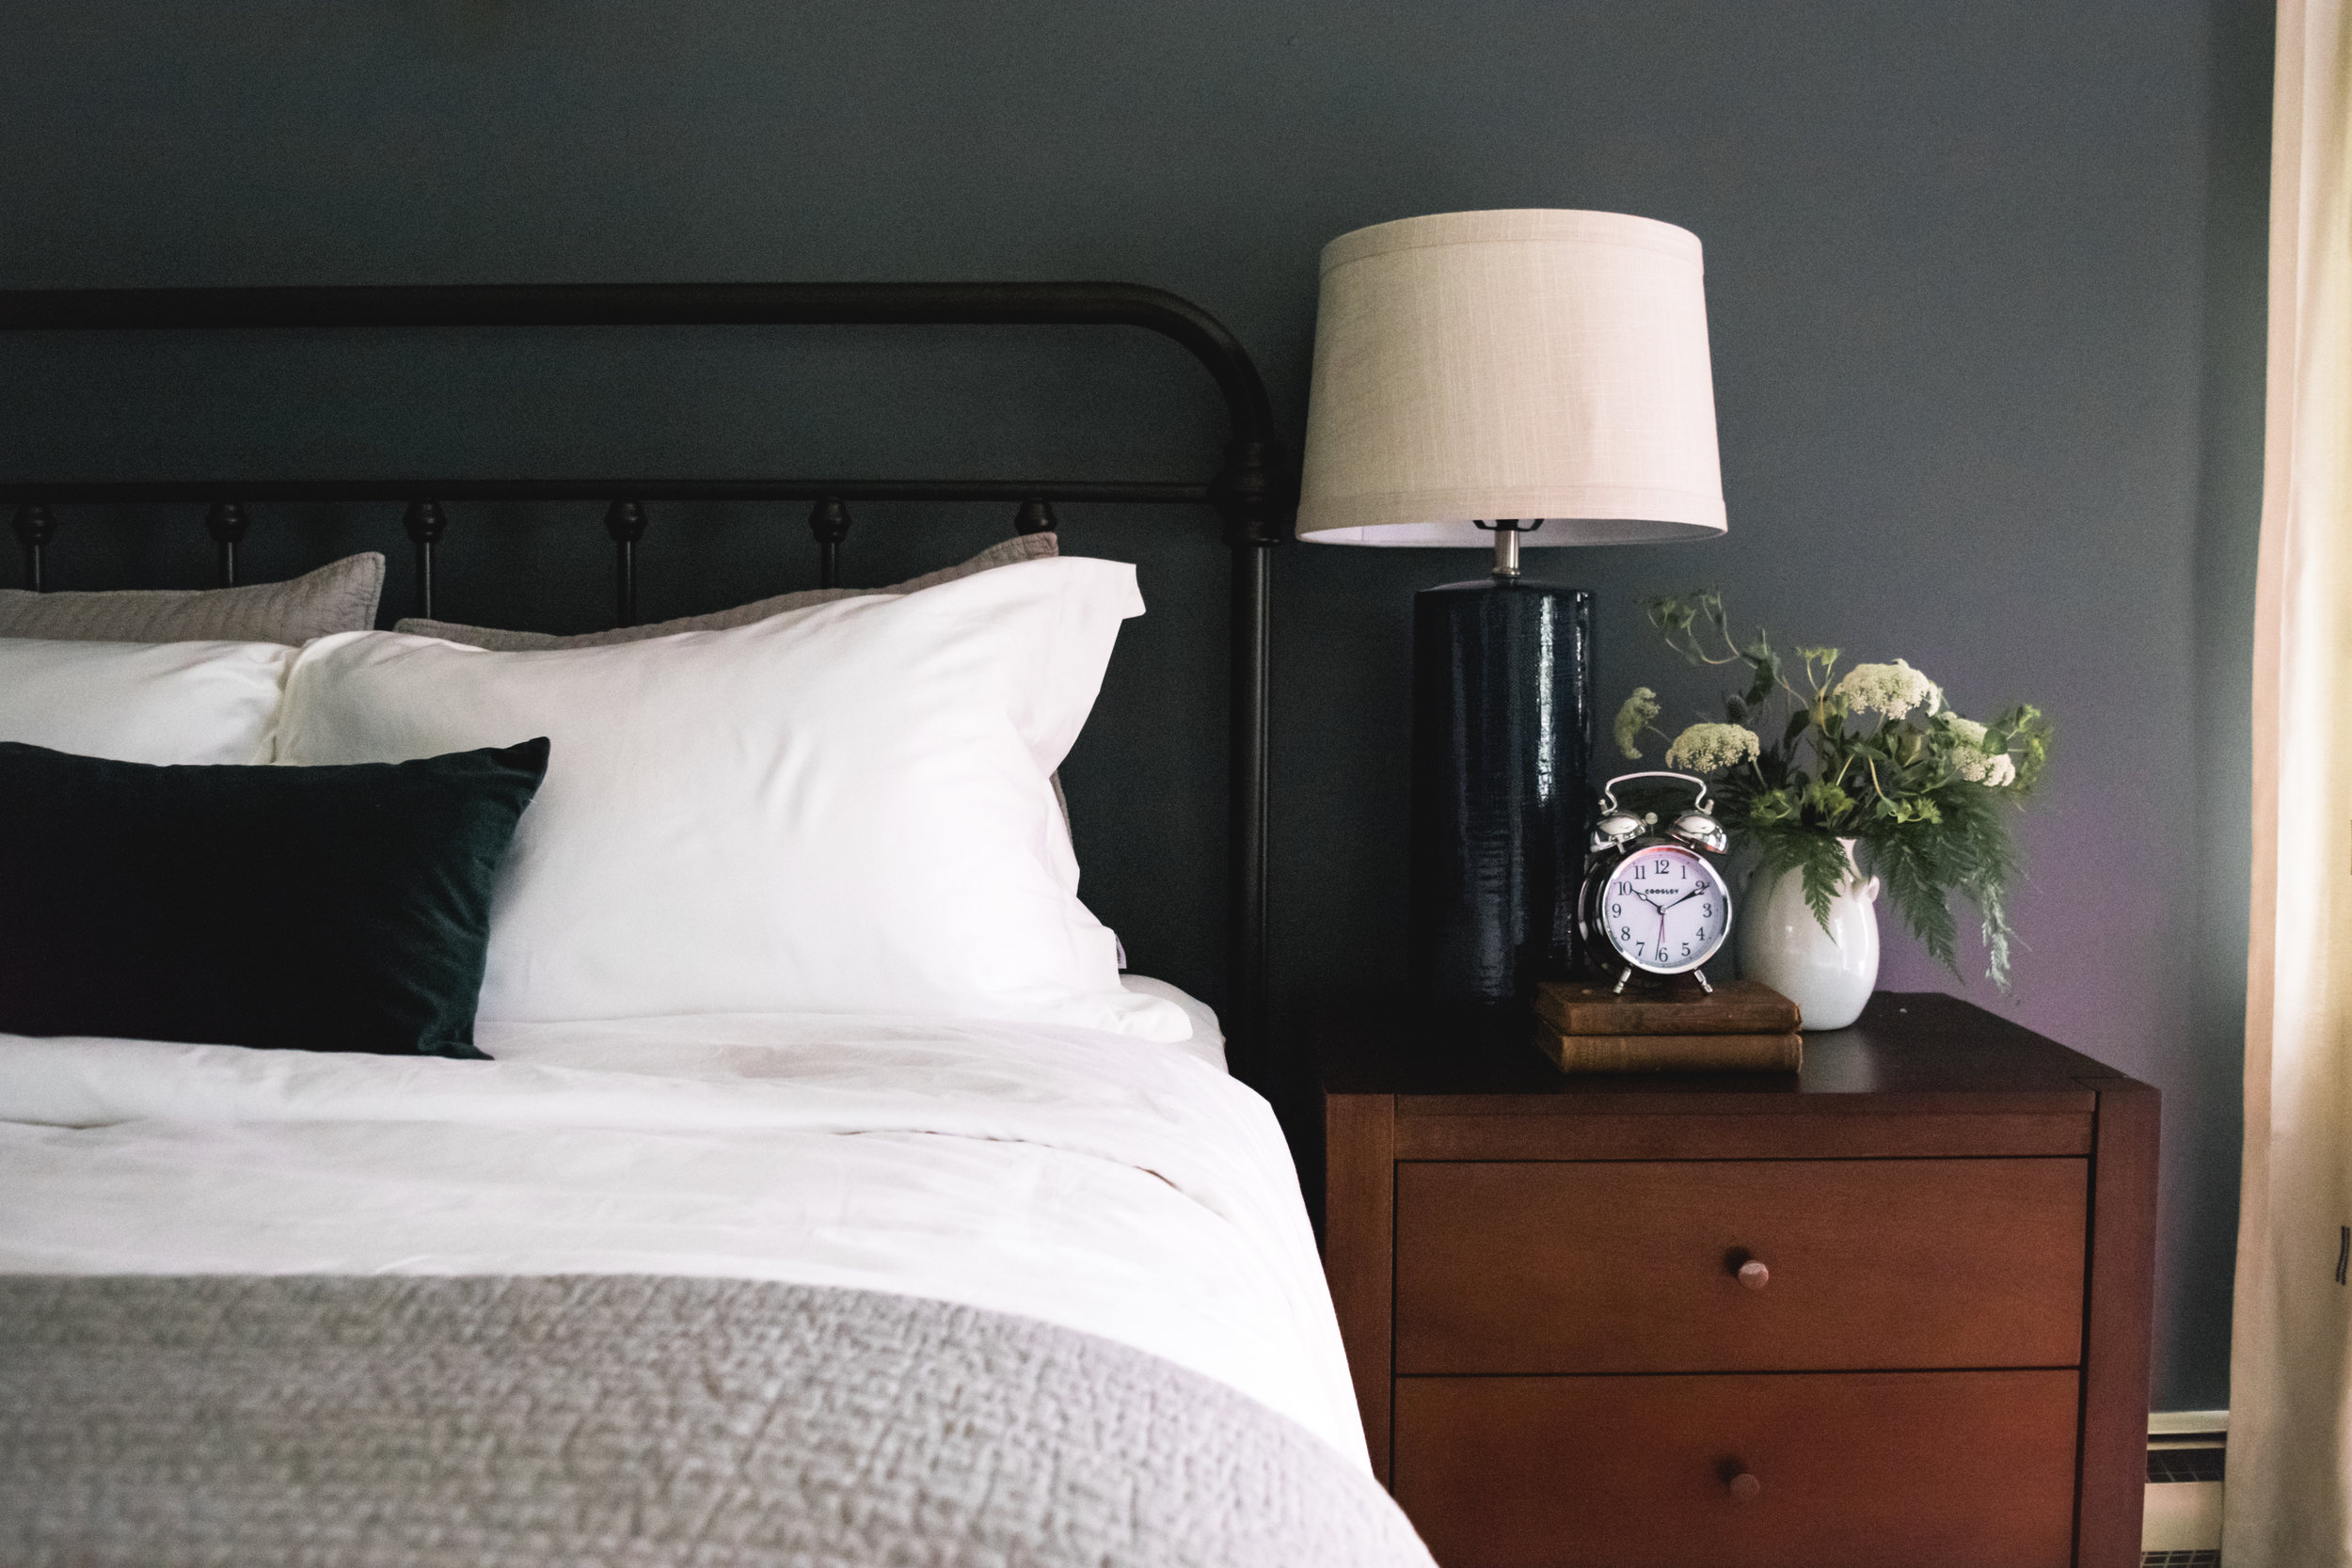 Idylwyld Project Guest Bedroom | Moody, masculine, industrial, cozy & bold  Read more about this project on our blog! >> http://www.steviestorck.com/blog/2017/8/6/idylwyld-guest-bedroom-reveal